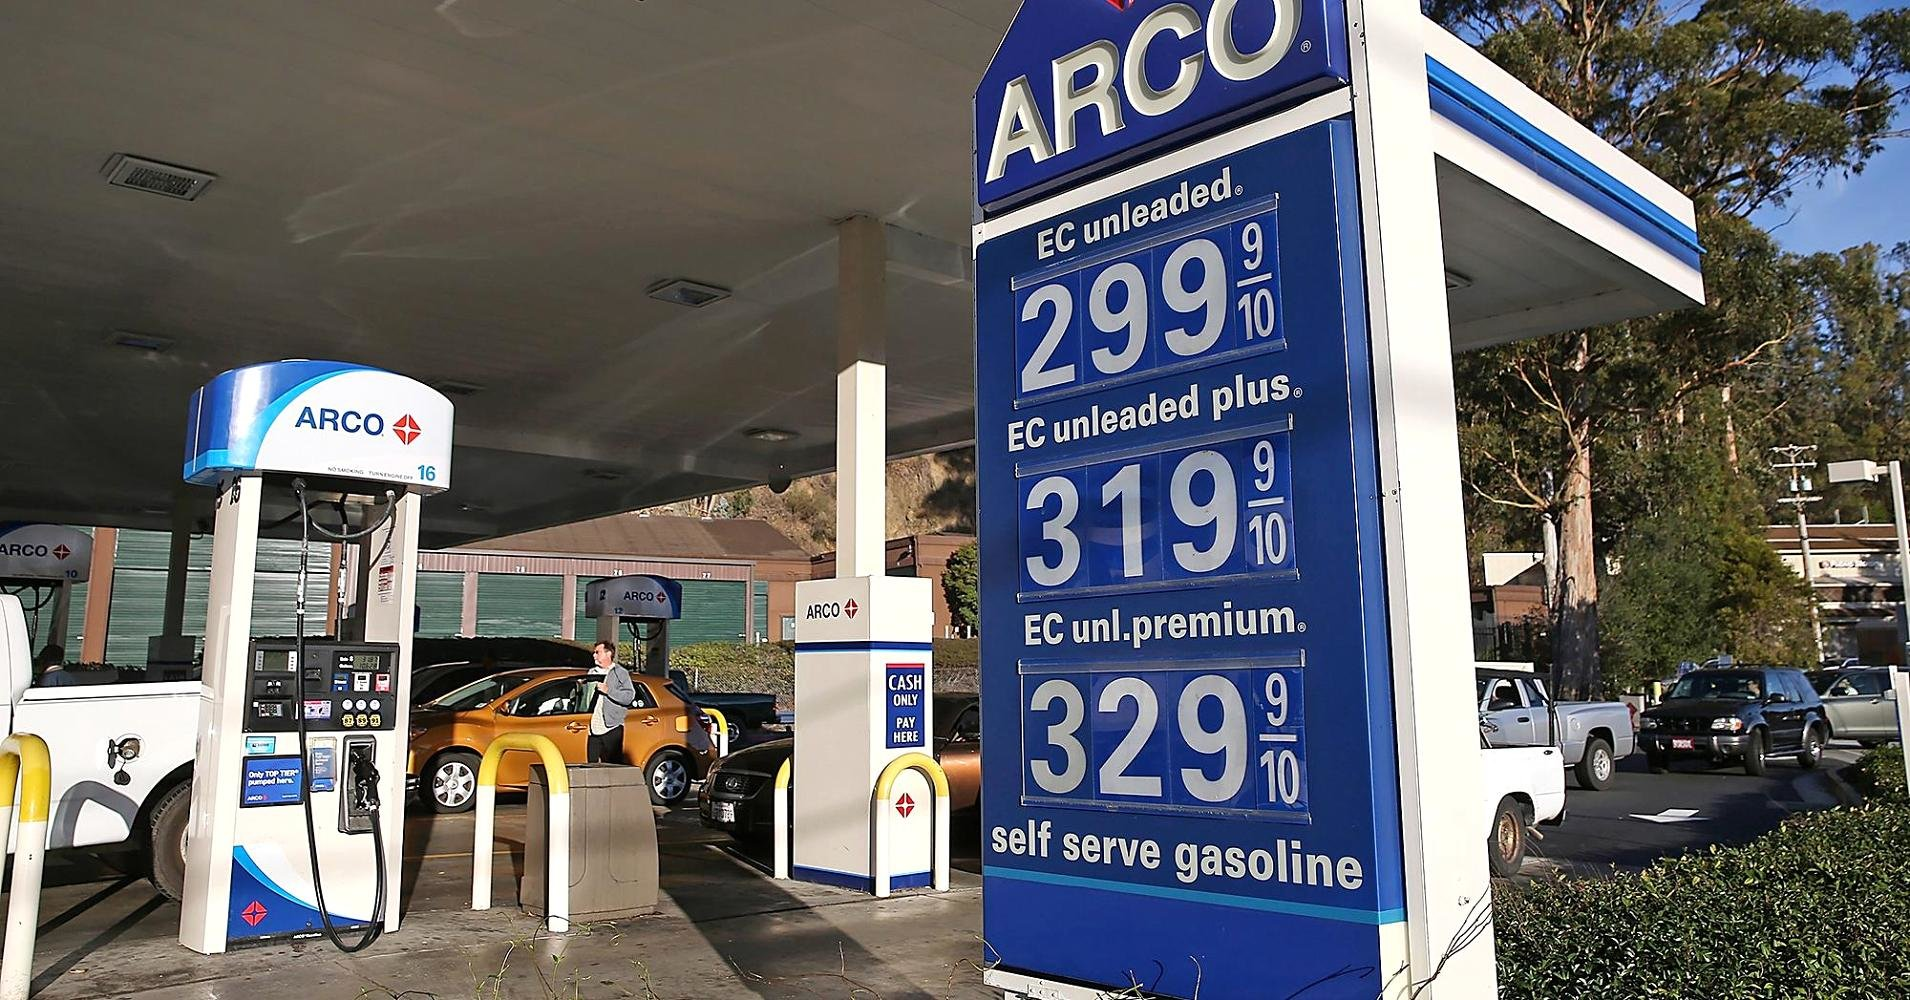 Gasoline at the gas station is massively underpowered 55